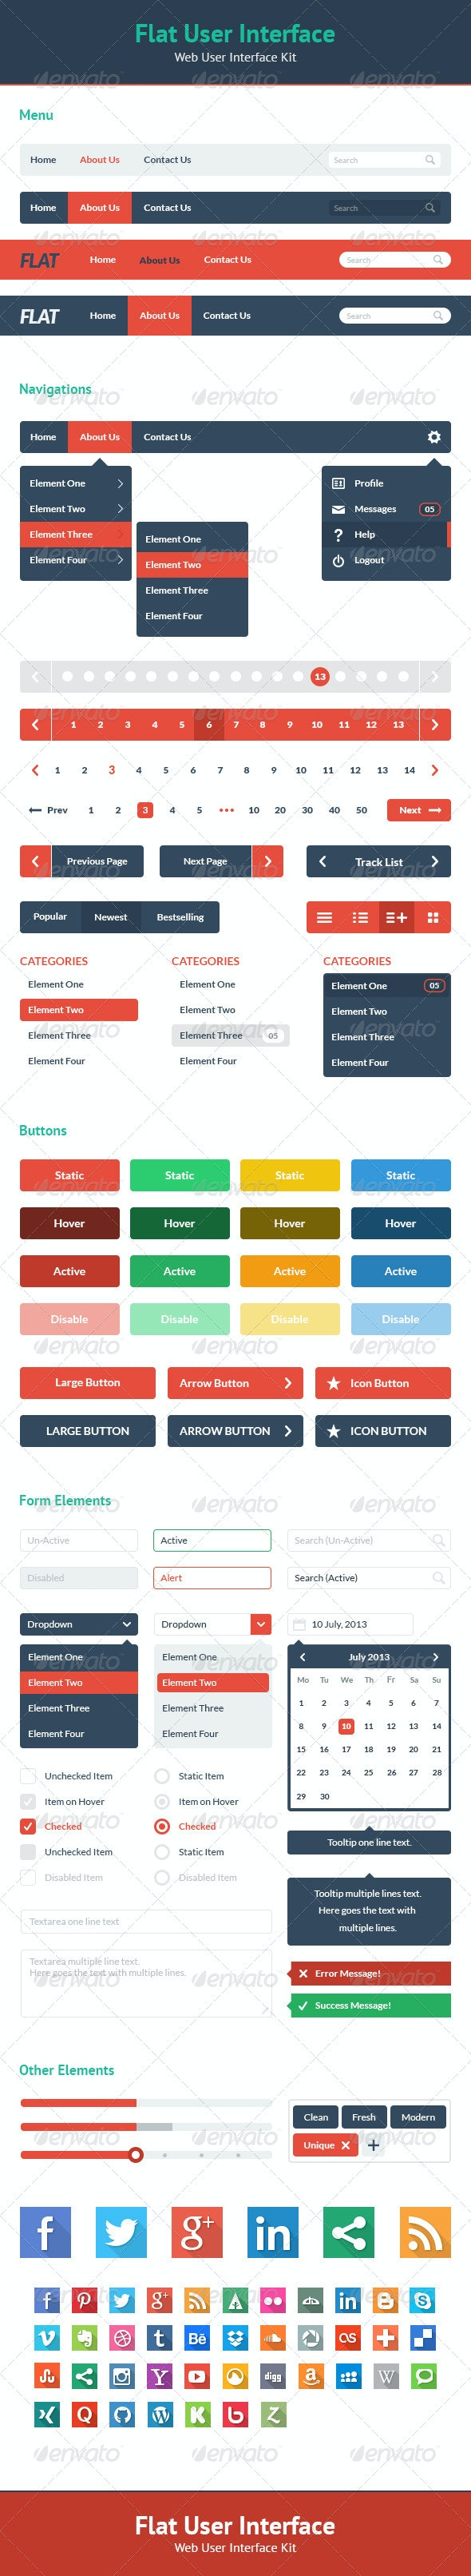 Flat User Interface - Web UI Kit - User Interfaces Web Elements